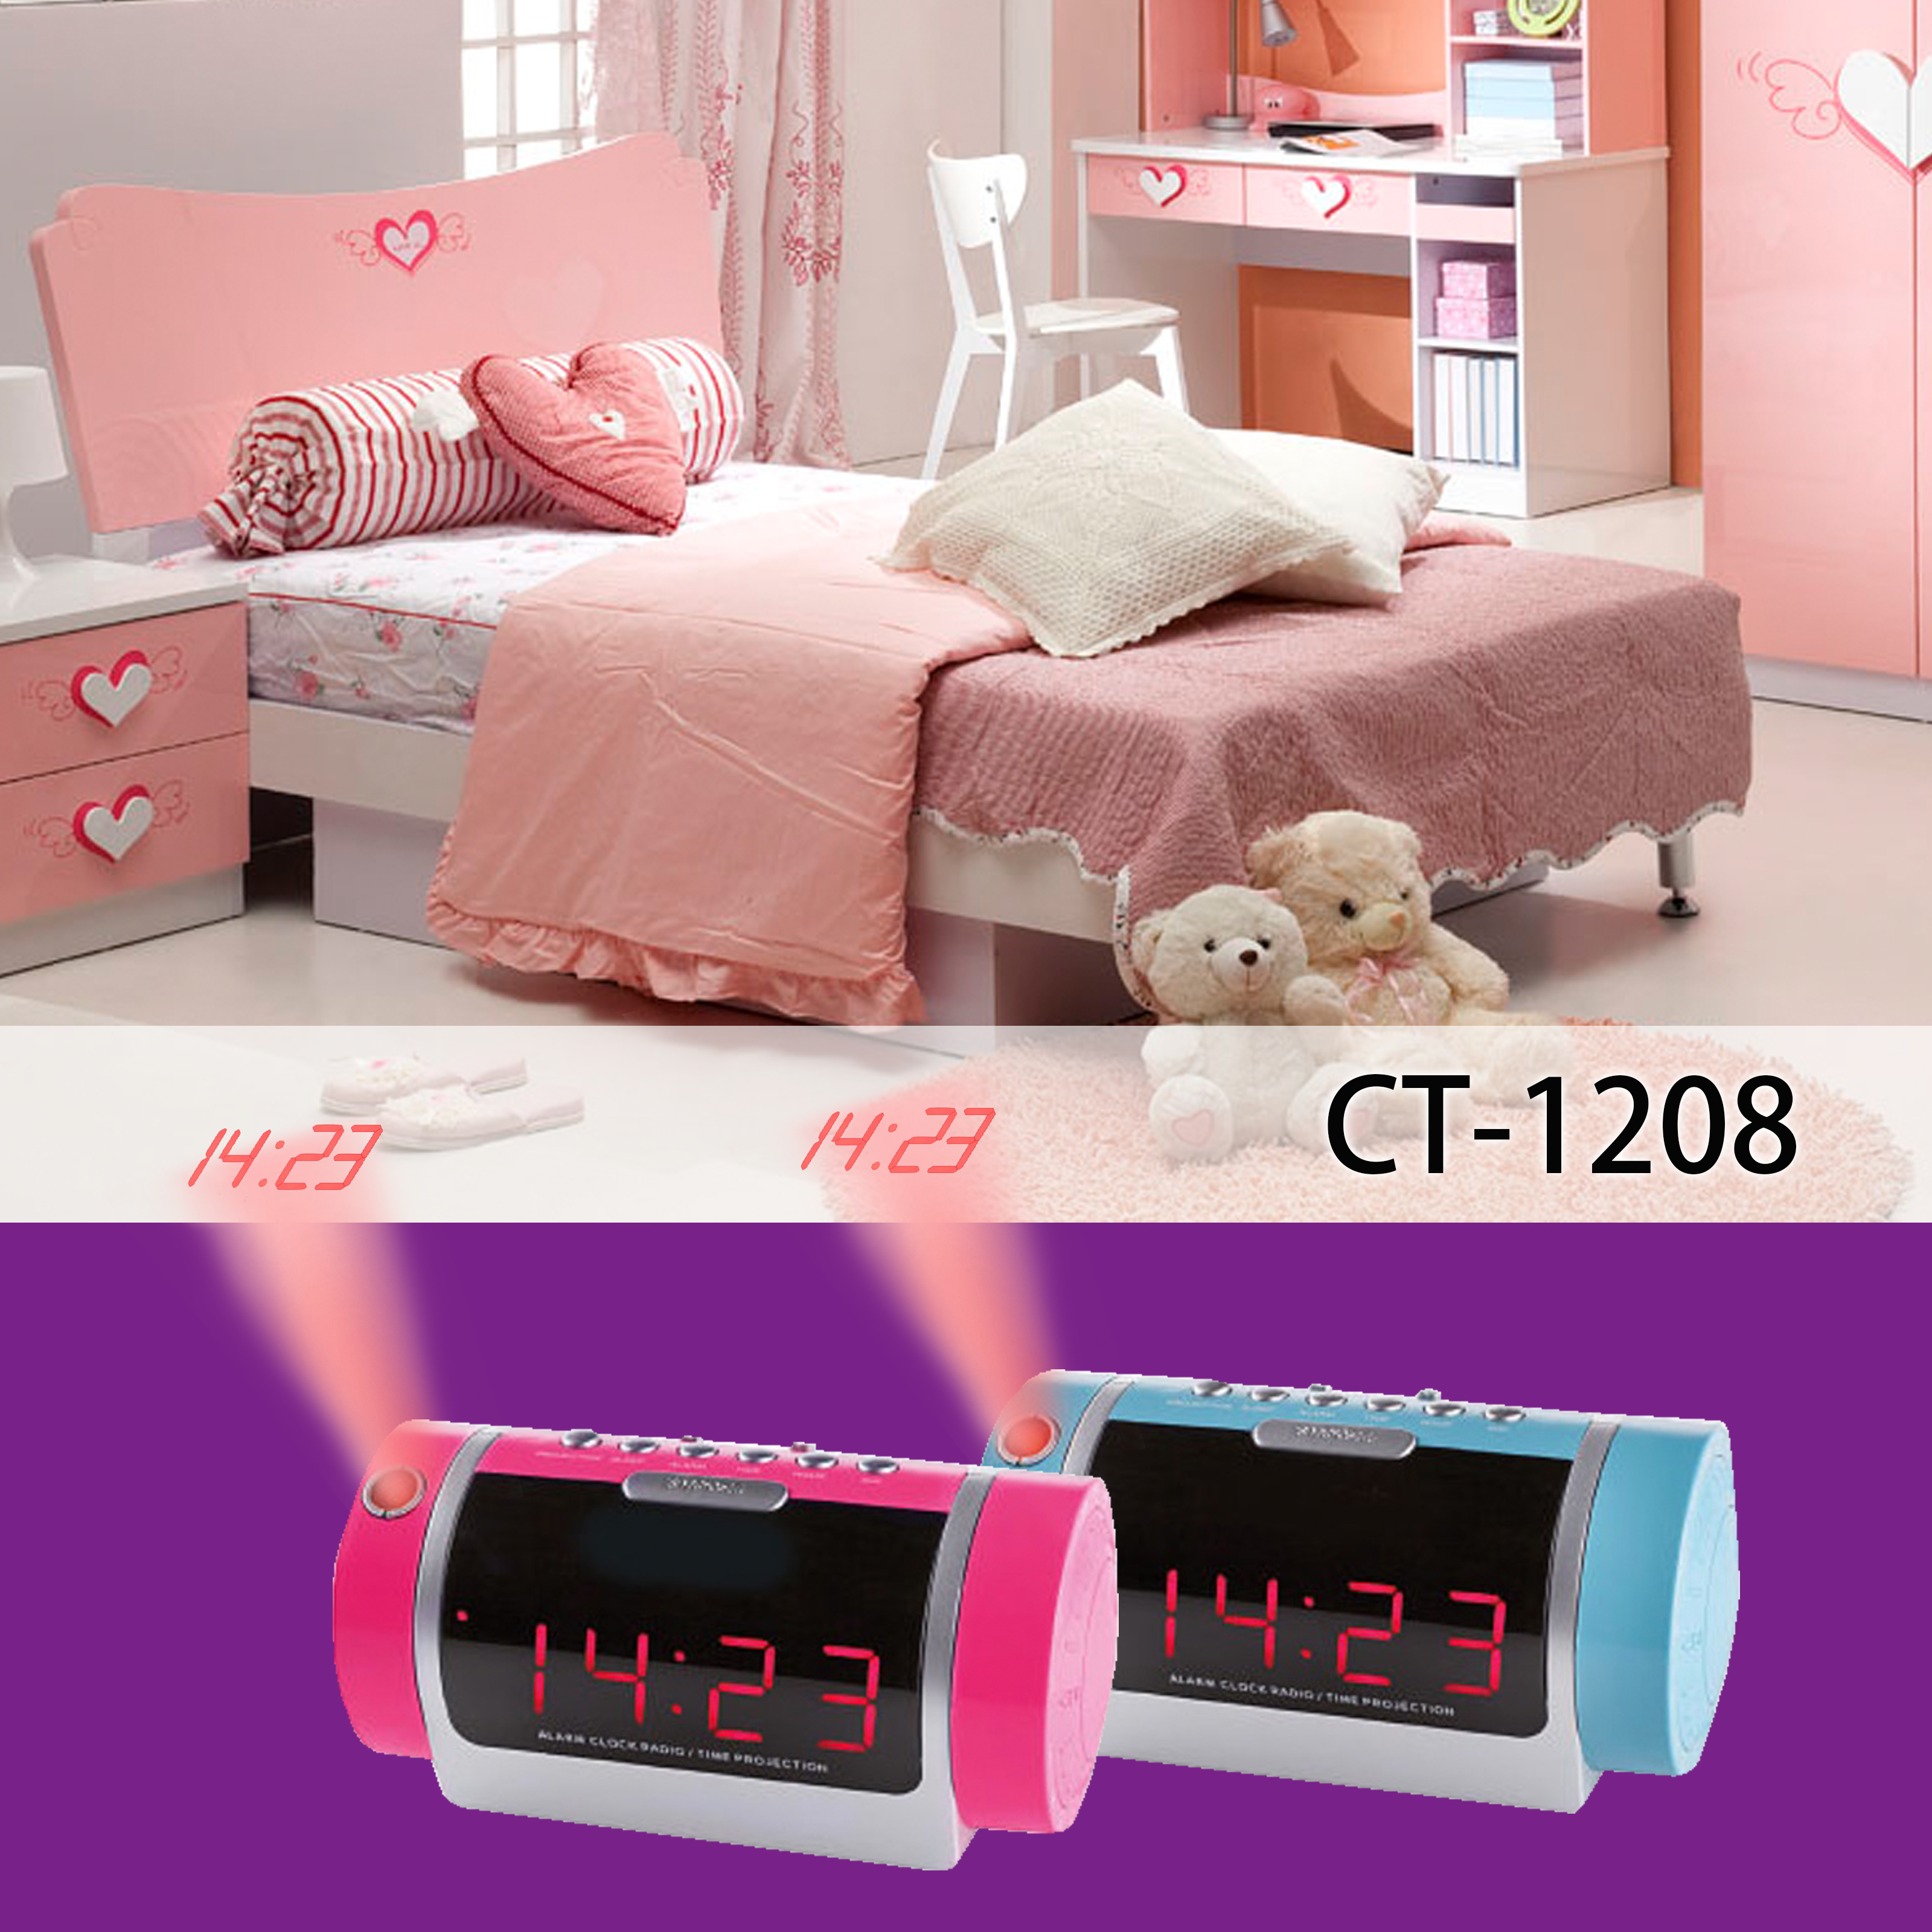 CT-1208 kids bedroom.jpg